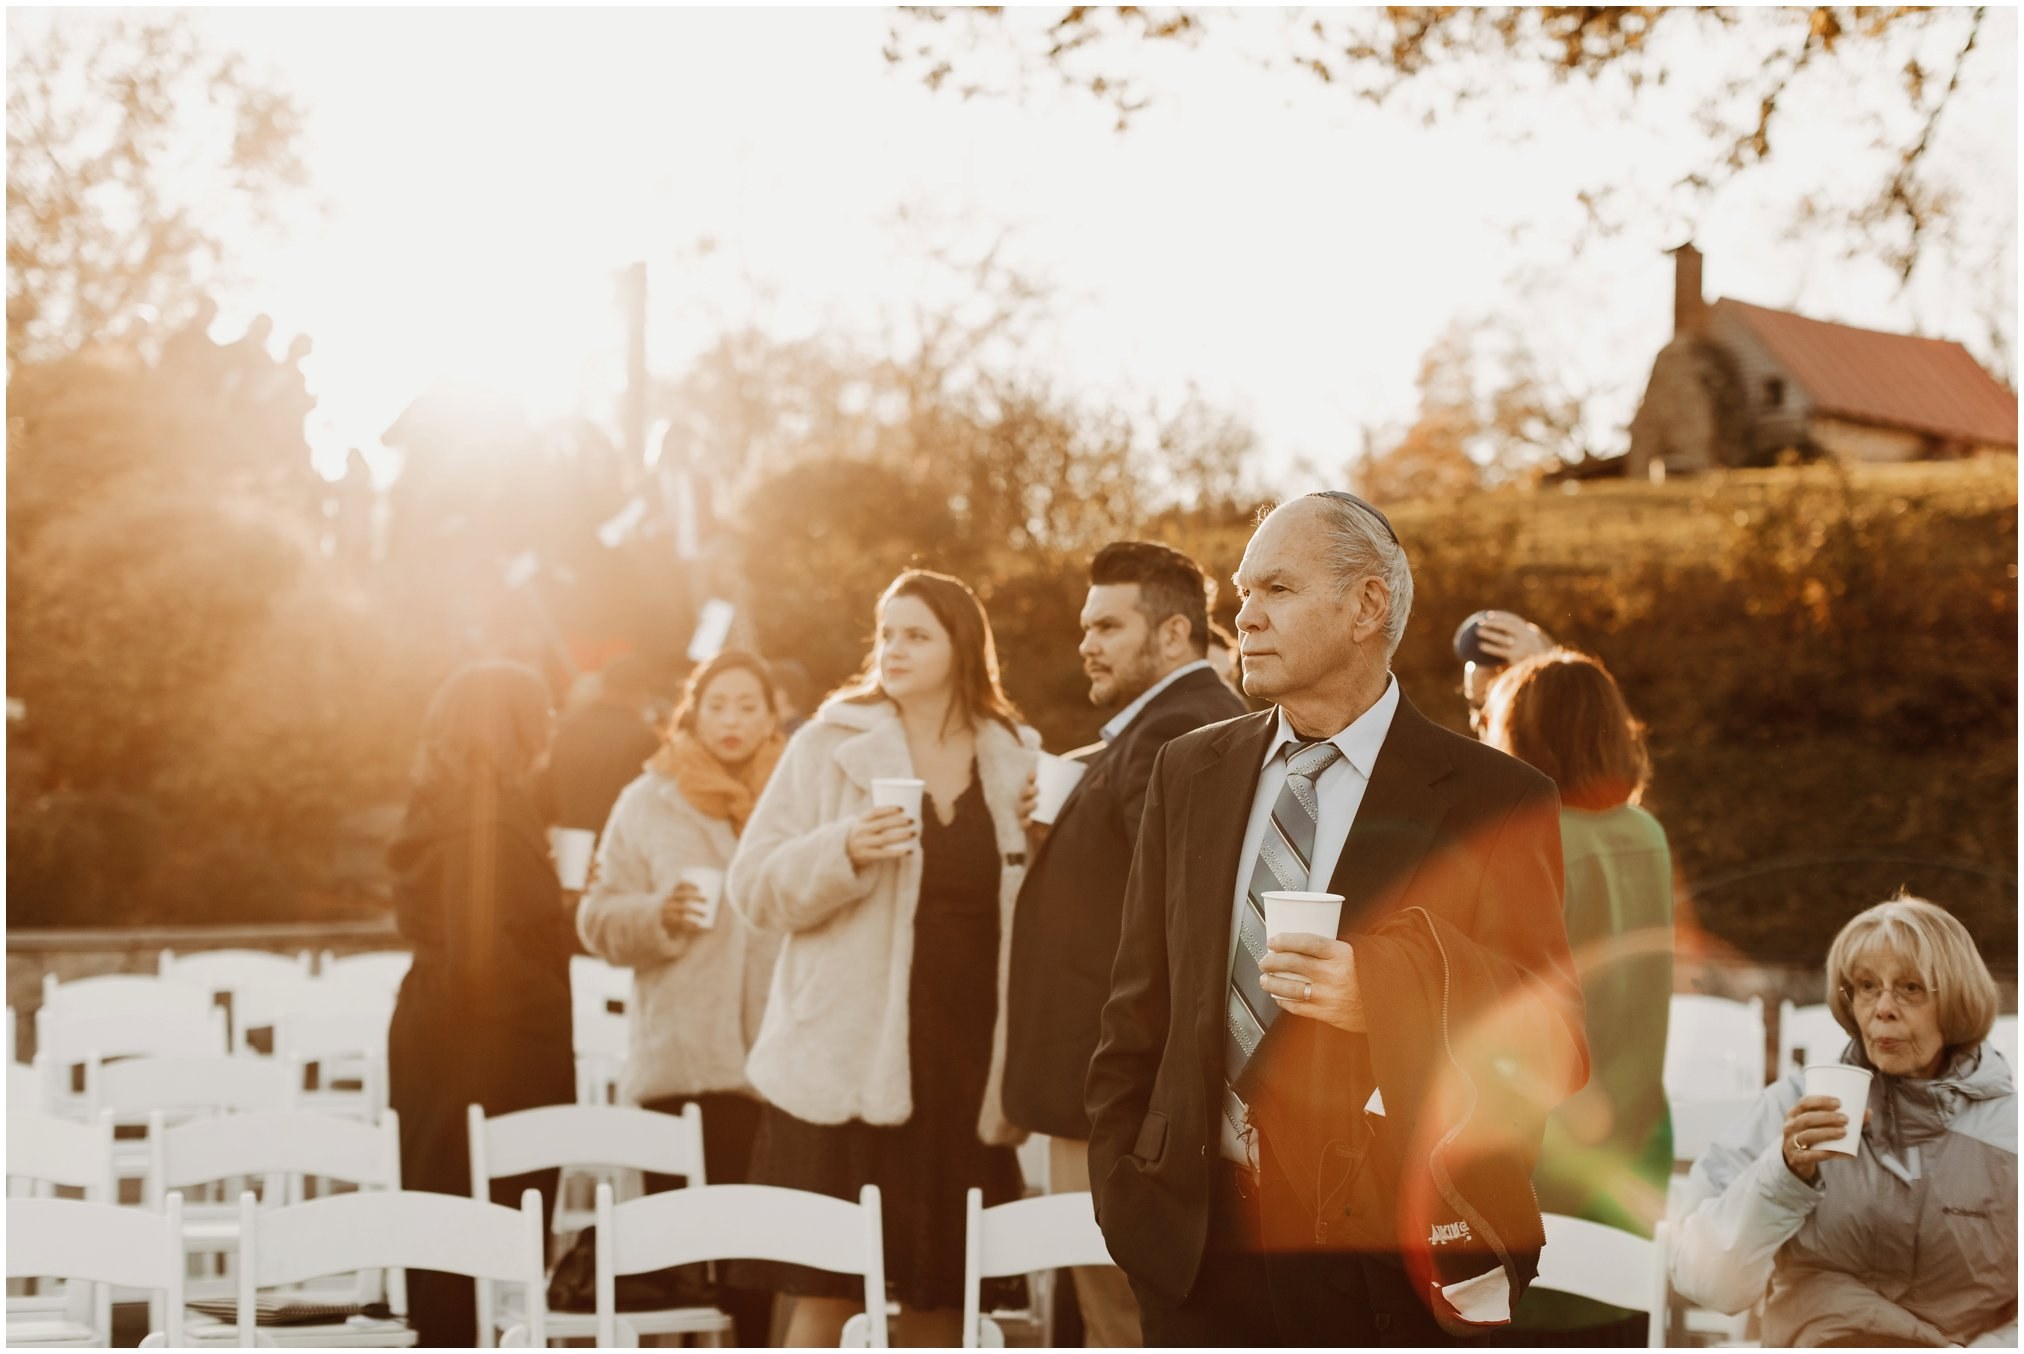 Outdoor fall wedding at sunset